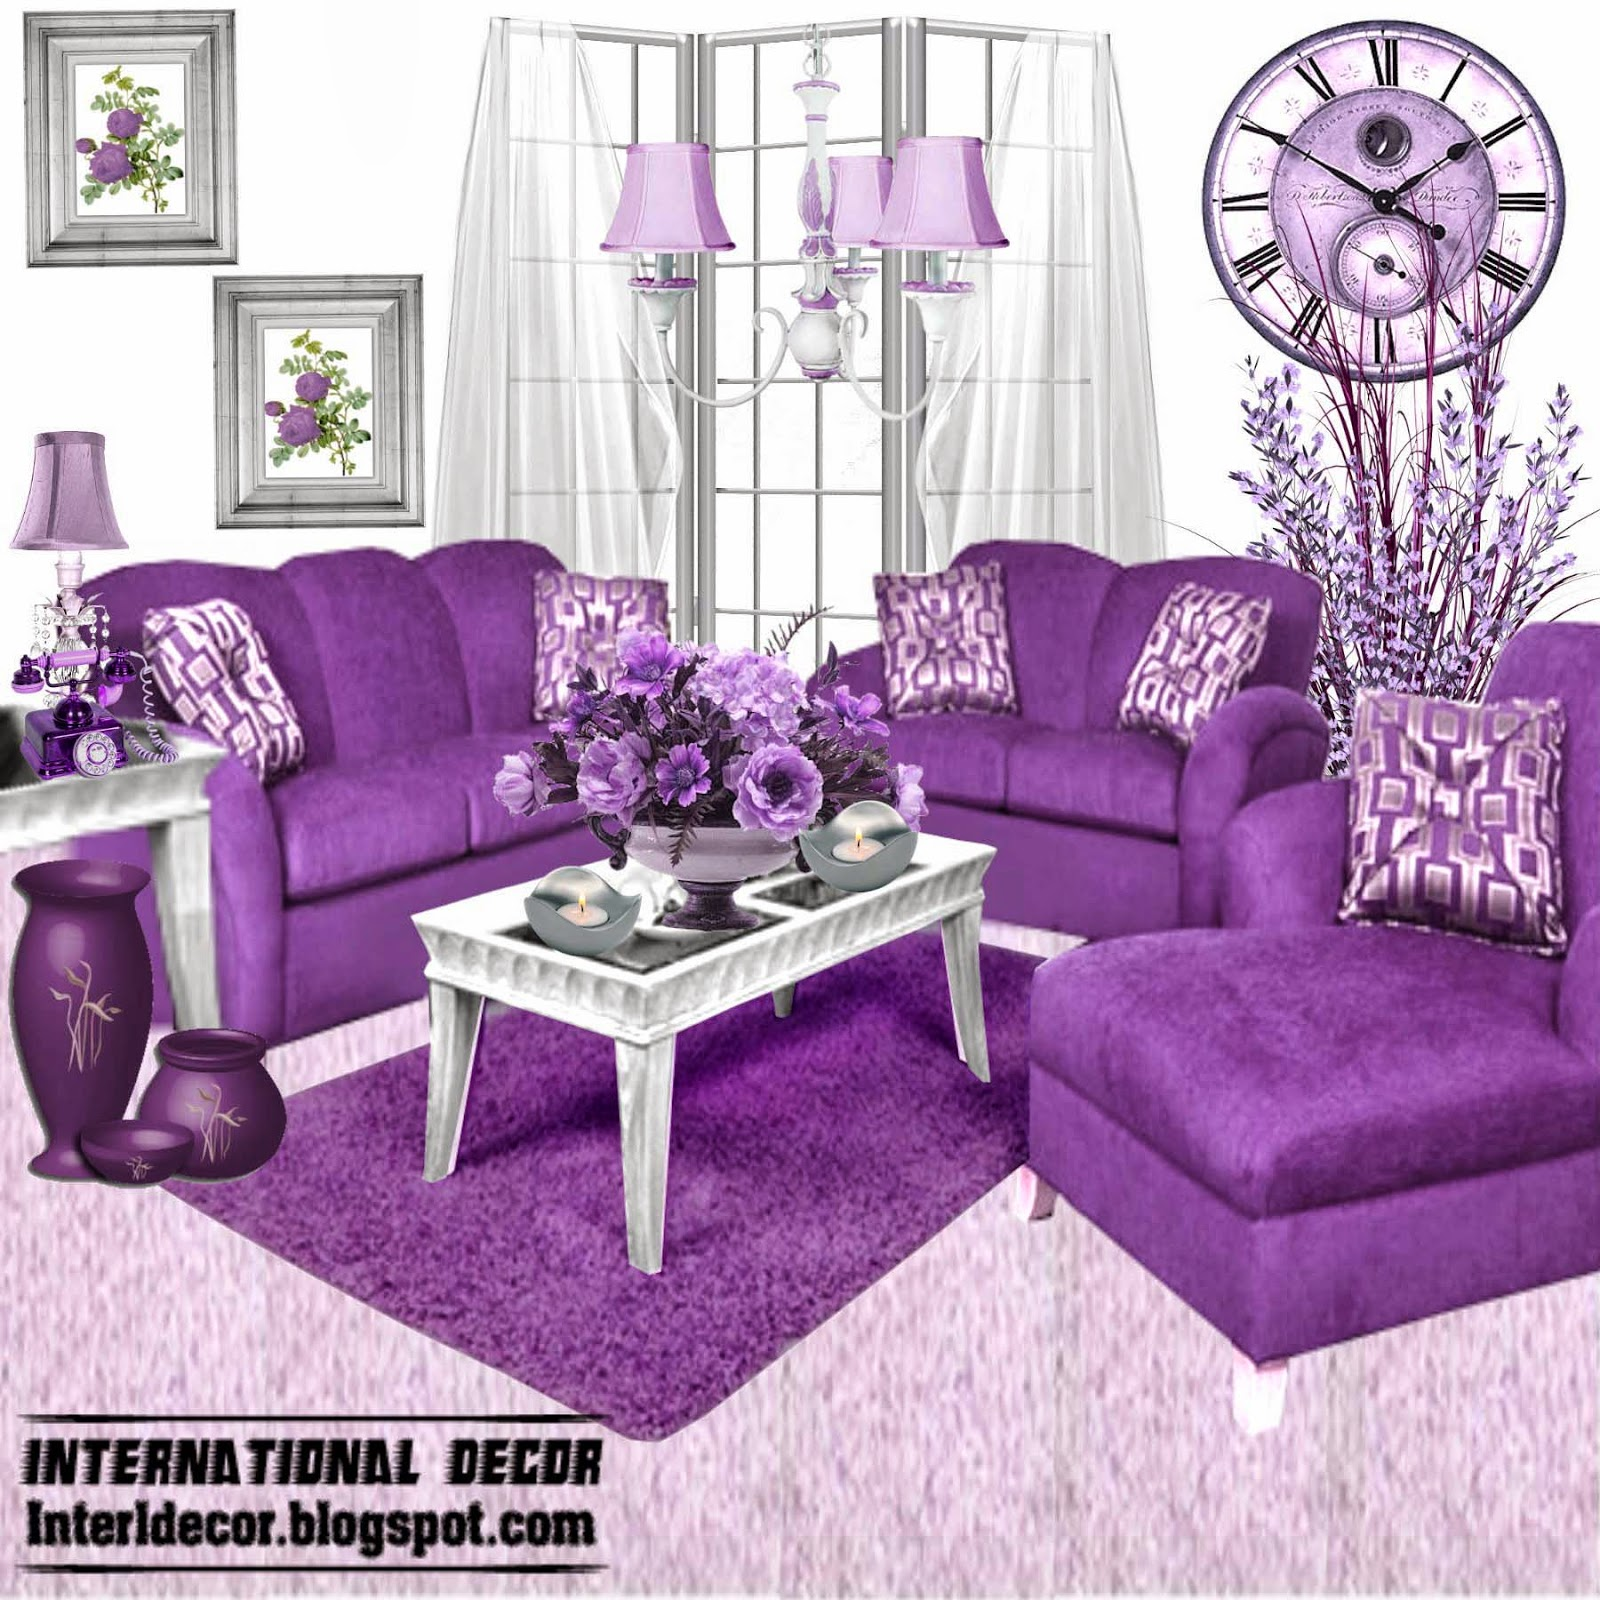 Purple Furniture For The Home Pinterest Purple Furniture Purple And Furniture